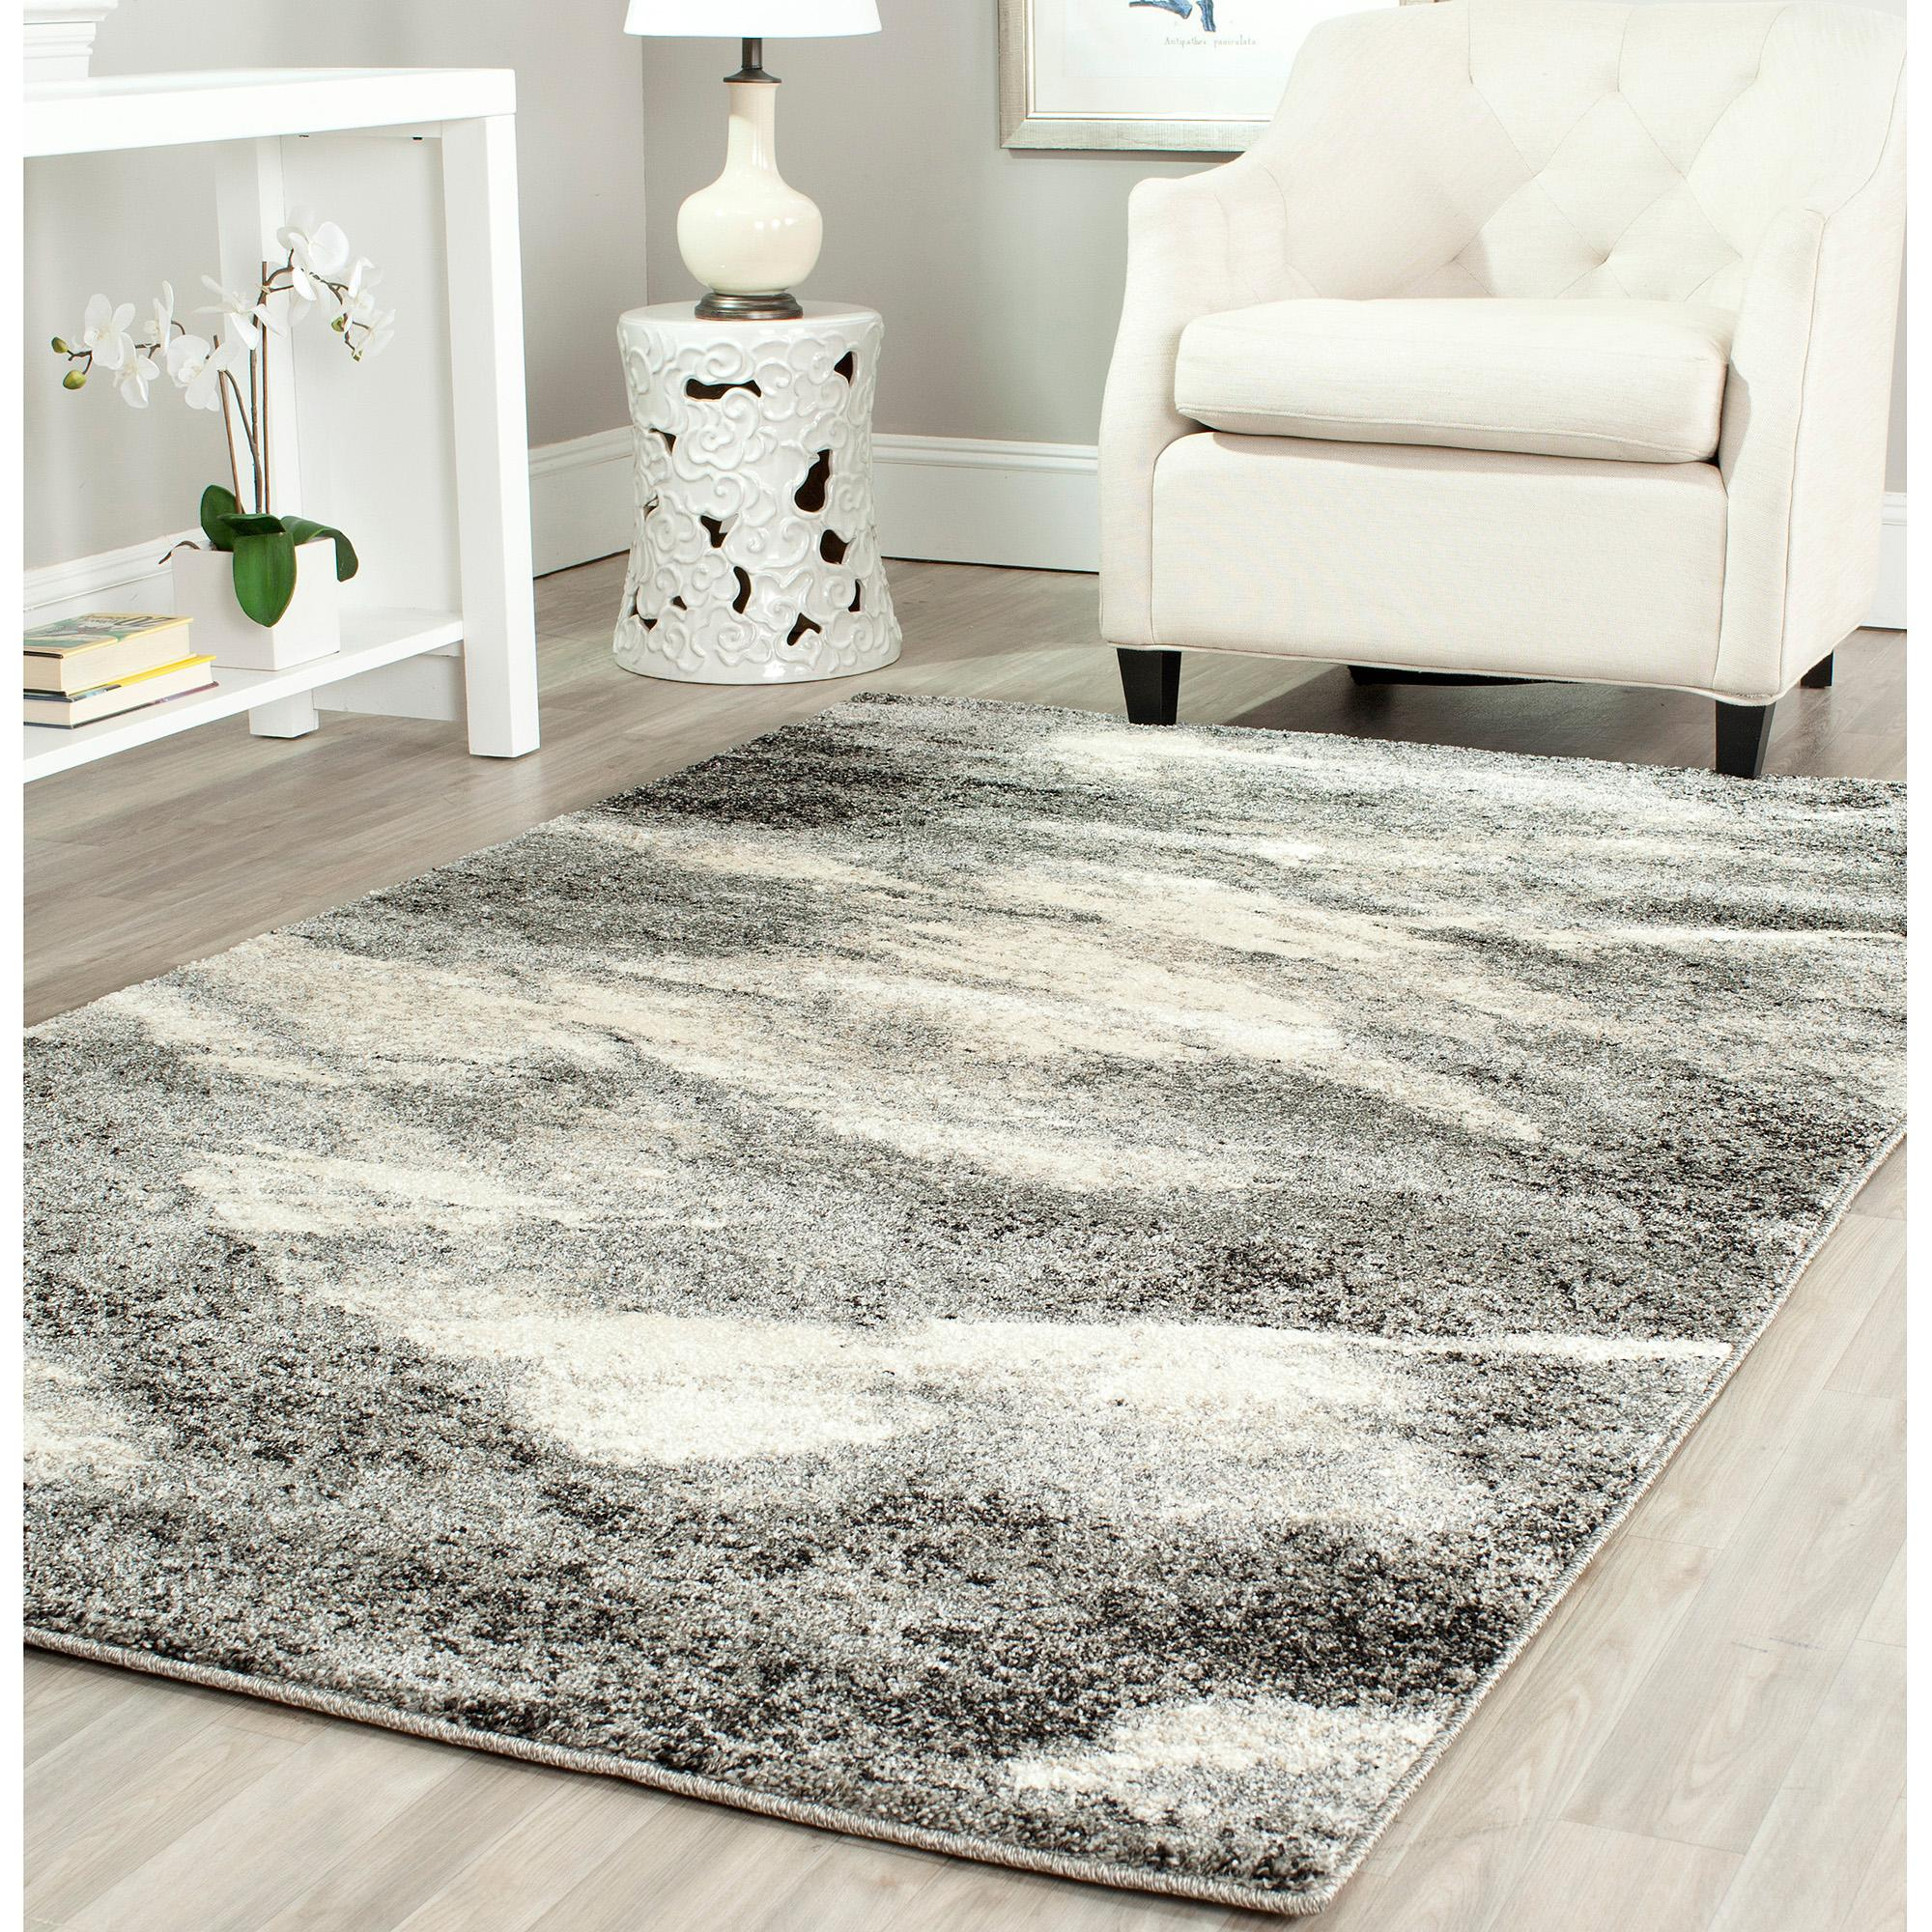 Black And White Damask Area Rug Best Decor Things